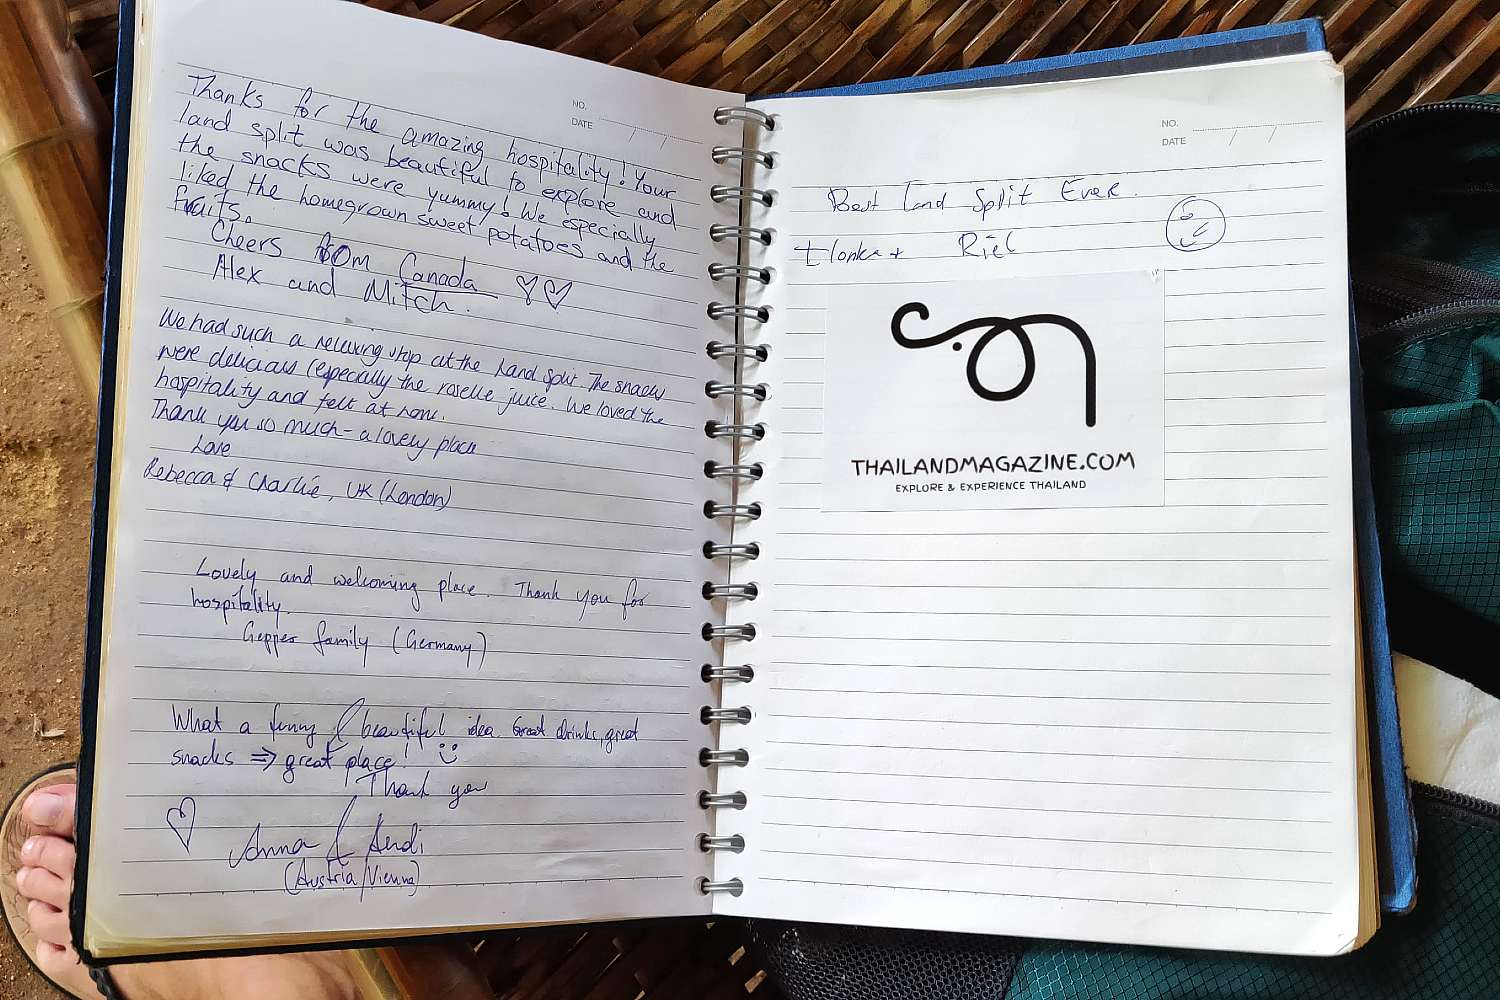 The guestbook of the Pai Land Split in Thailand